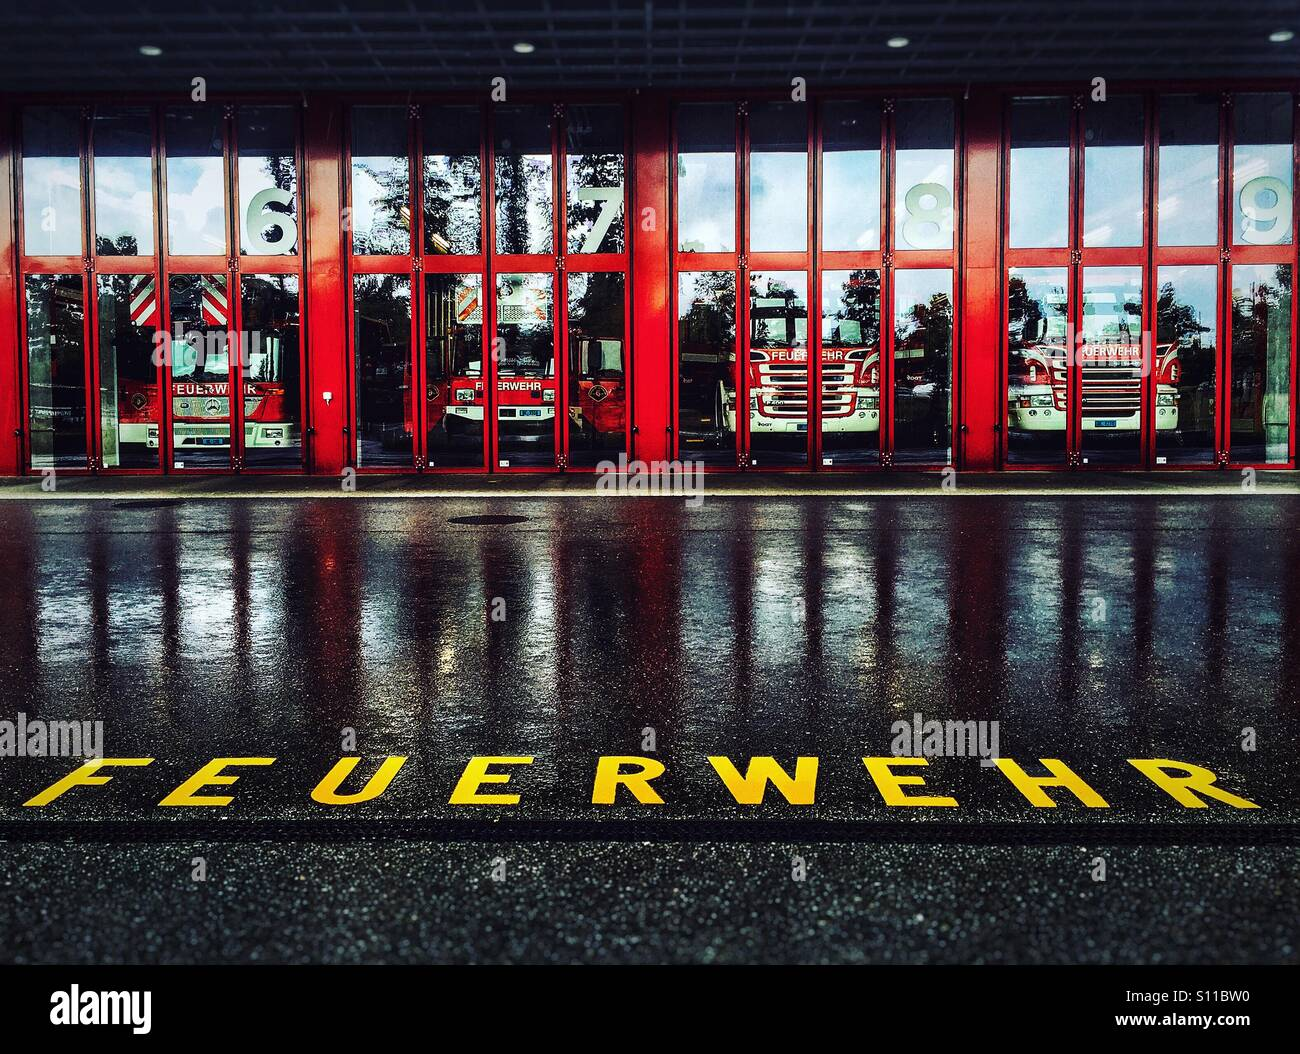 Feuerwehr- fire engines at Bern fire station - Stock Image